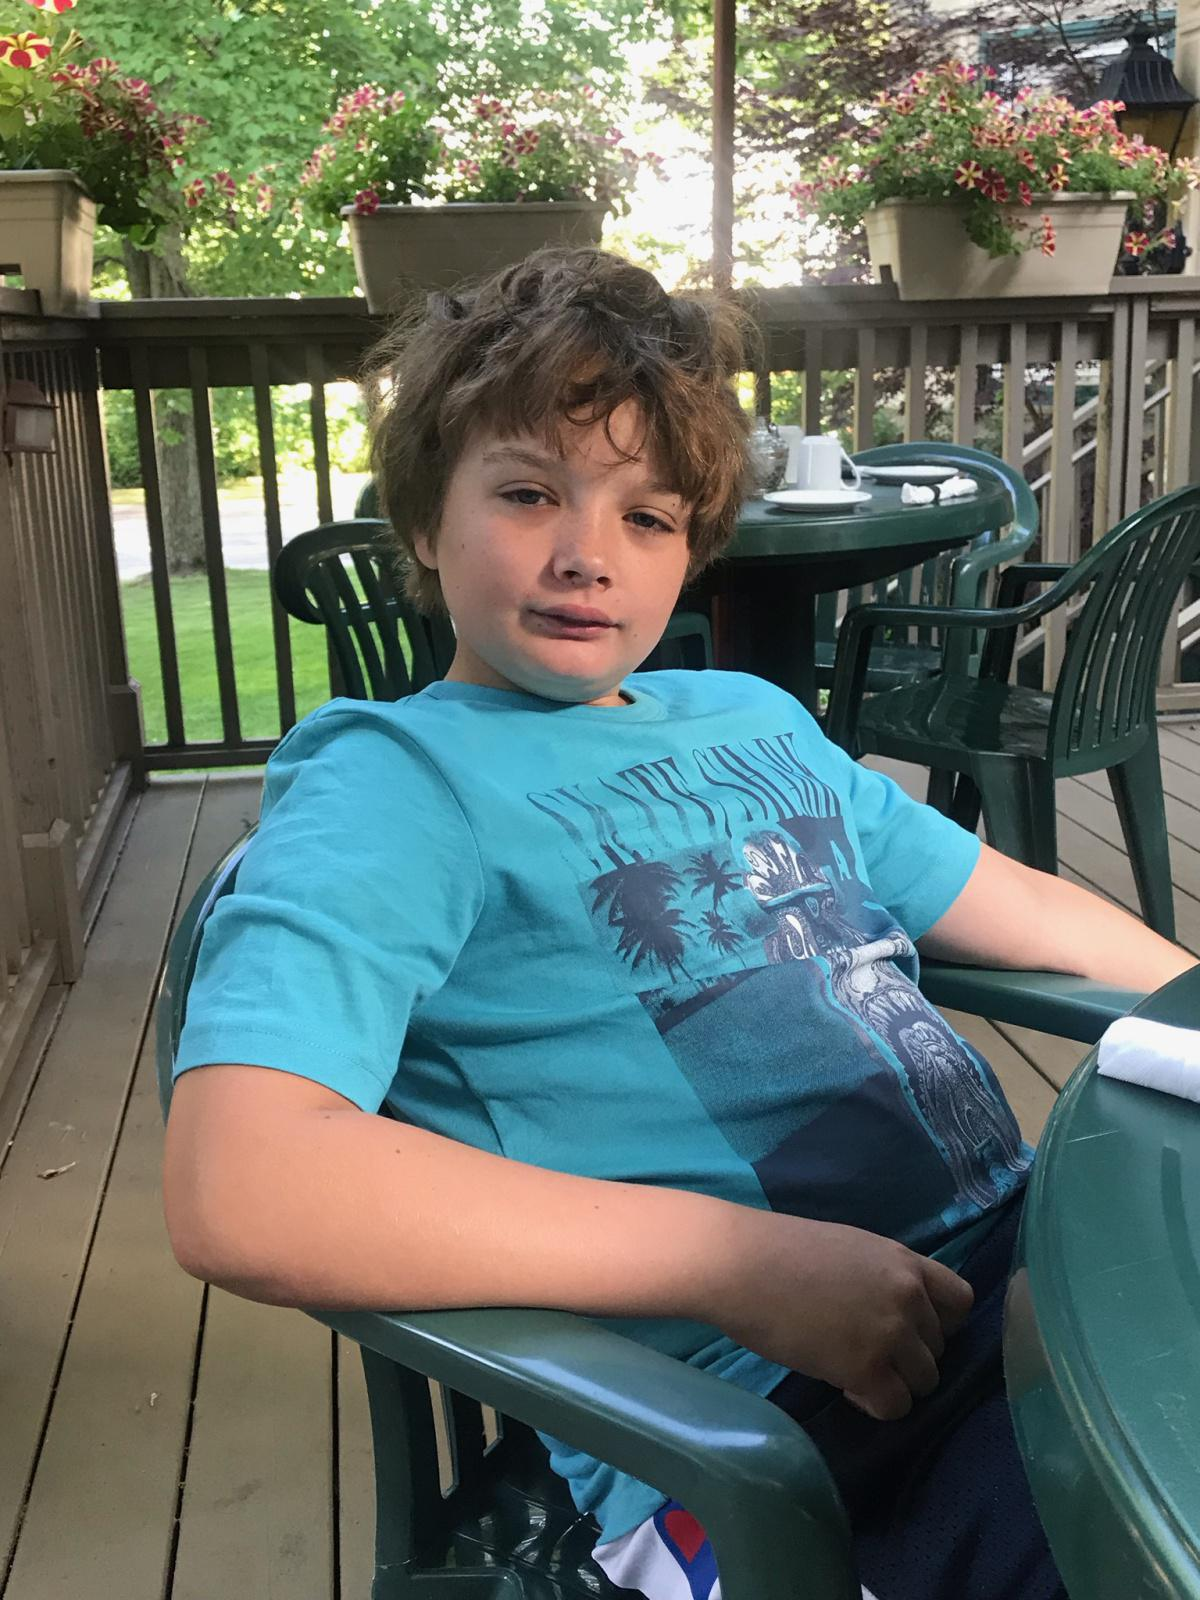 Police searching for missing 9-year-old Graeme & seeking public's assistance. #FindGraeme